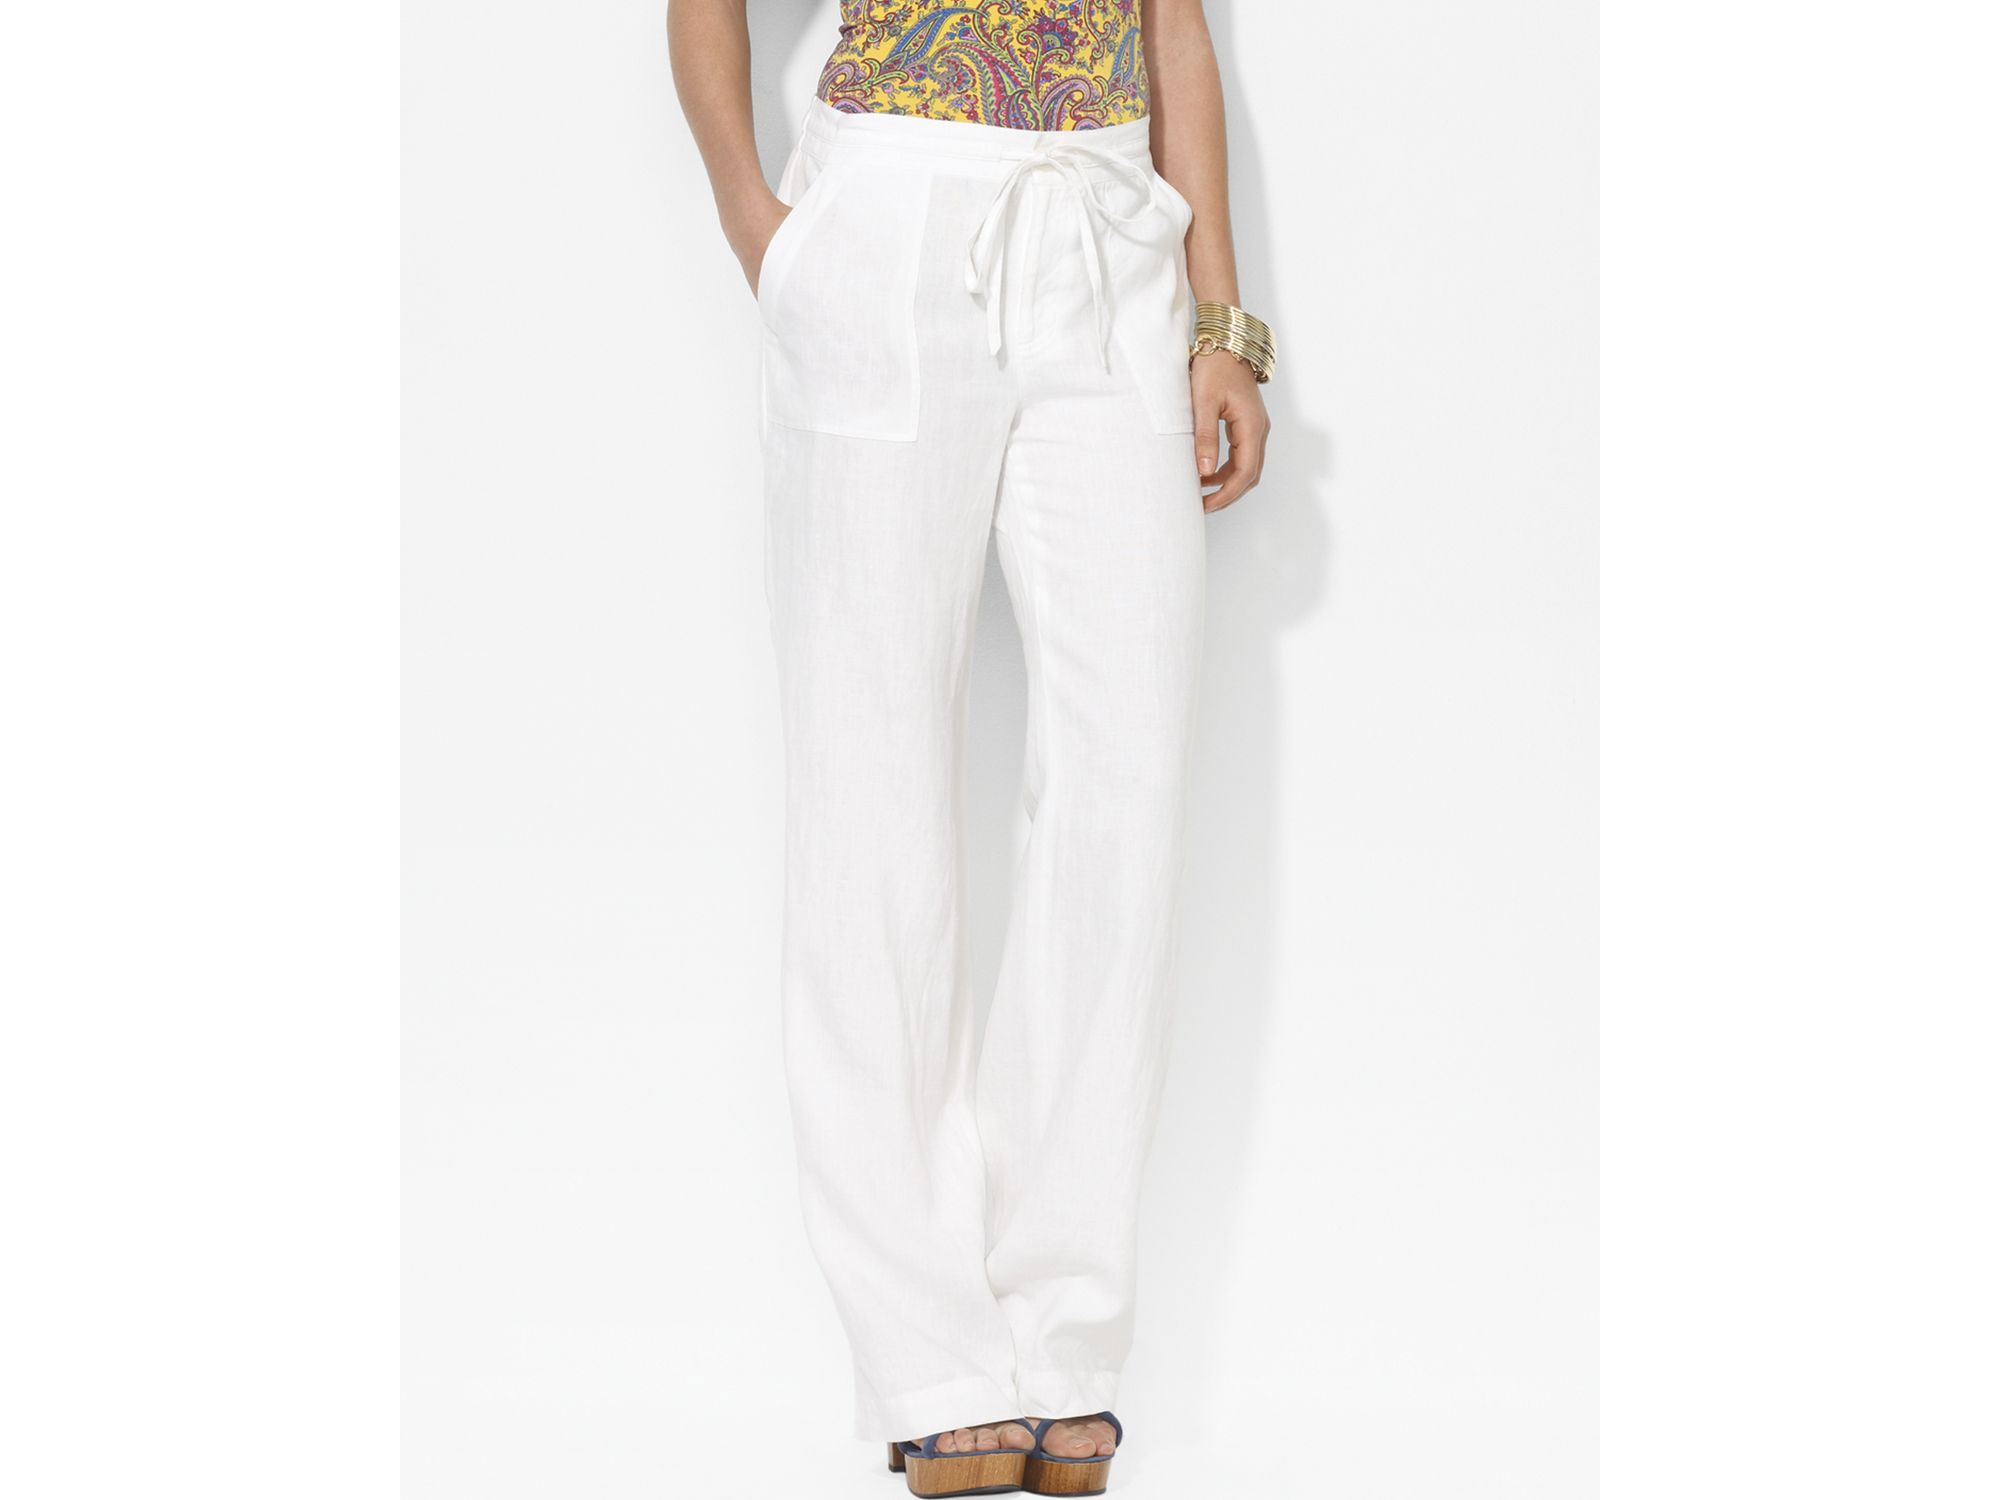 Lauren by ralph lauren Linen Drawstring Pants in White | Lyst